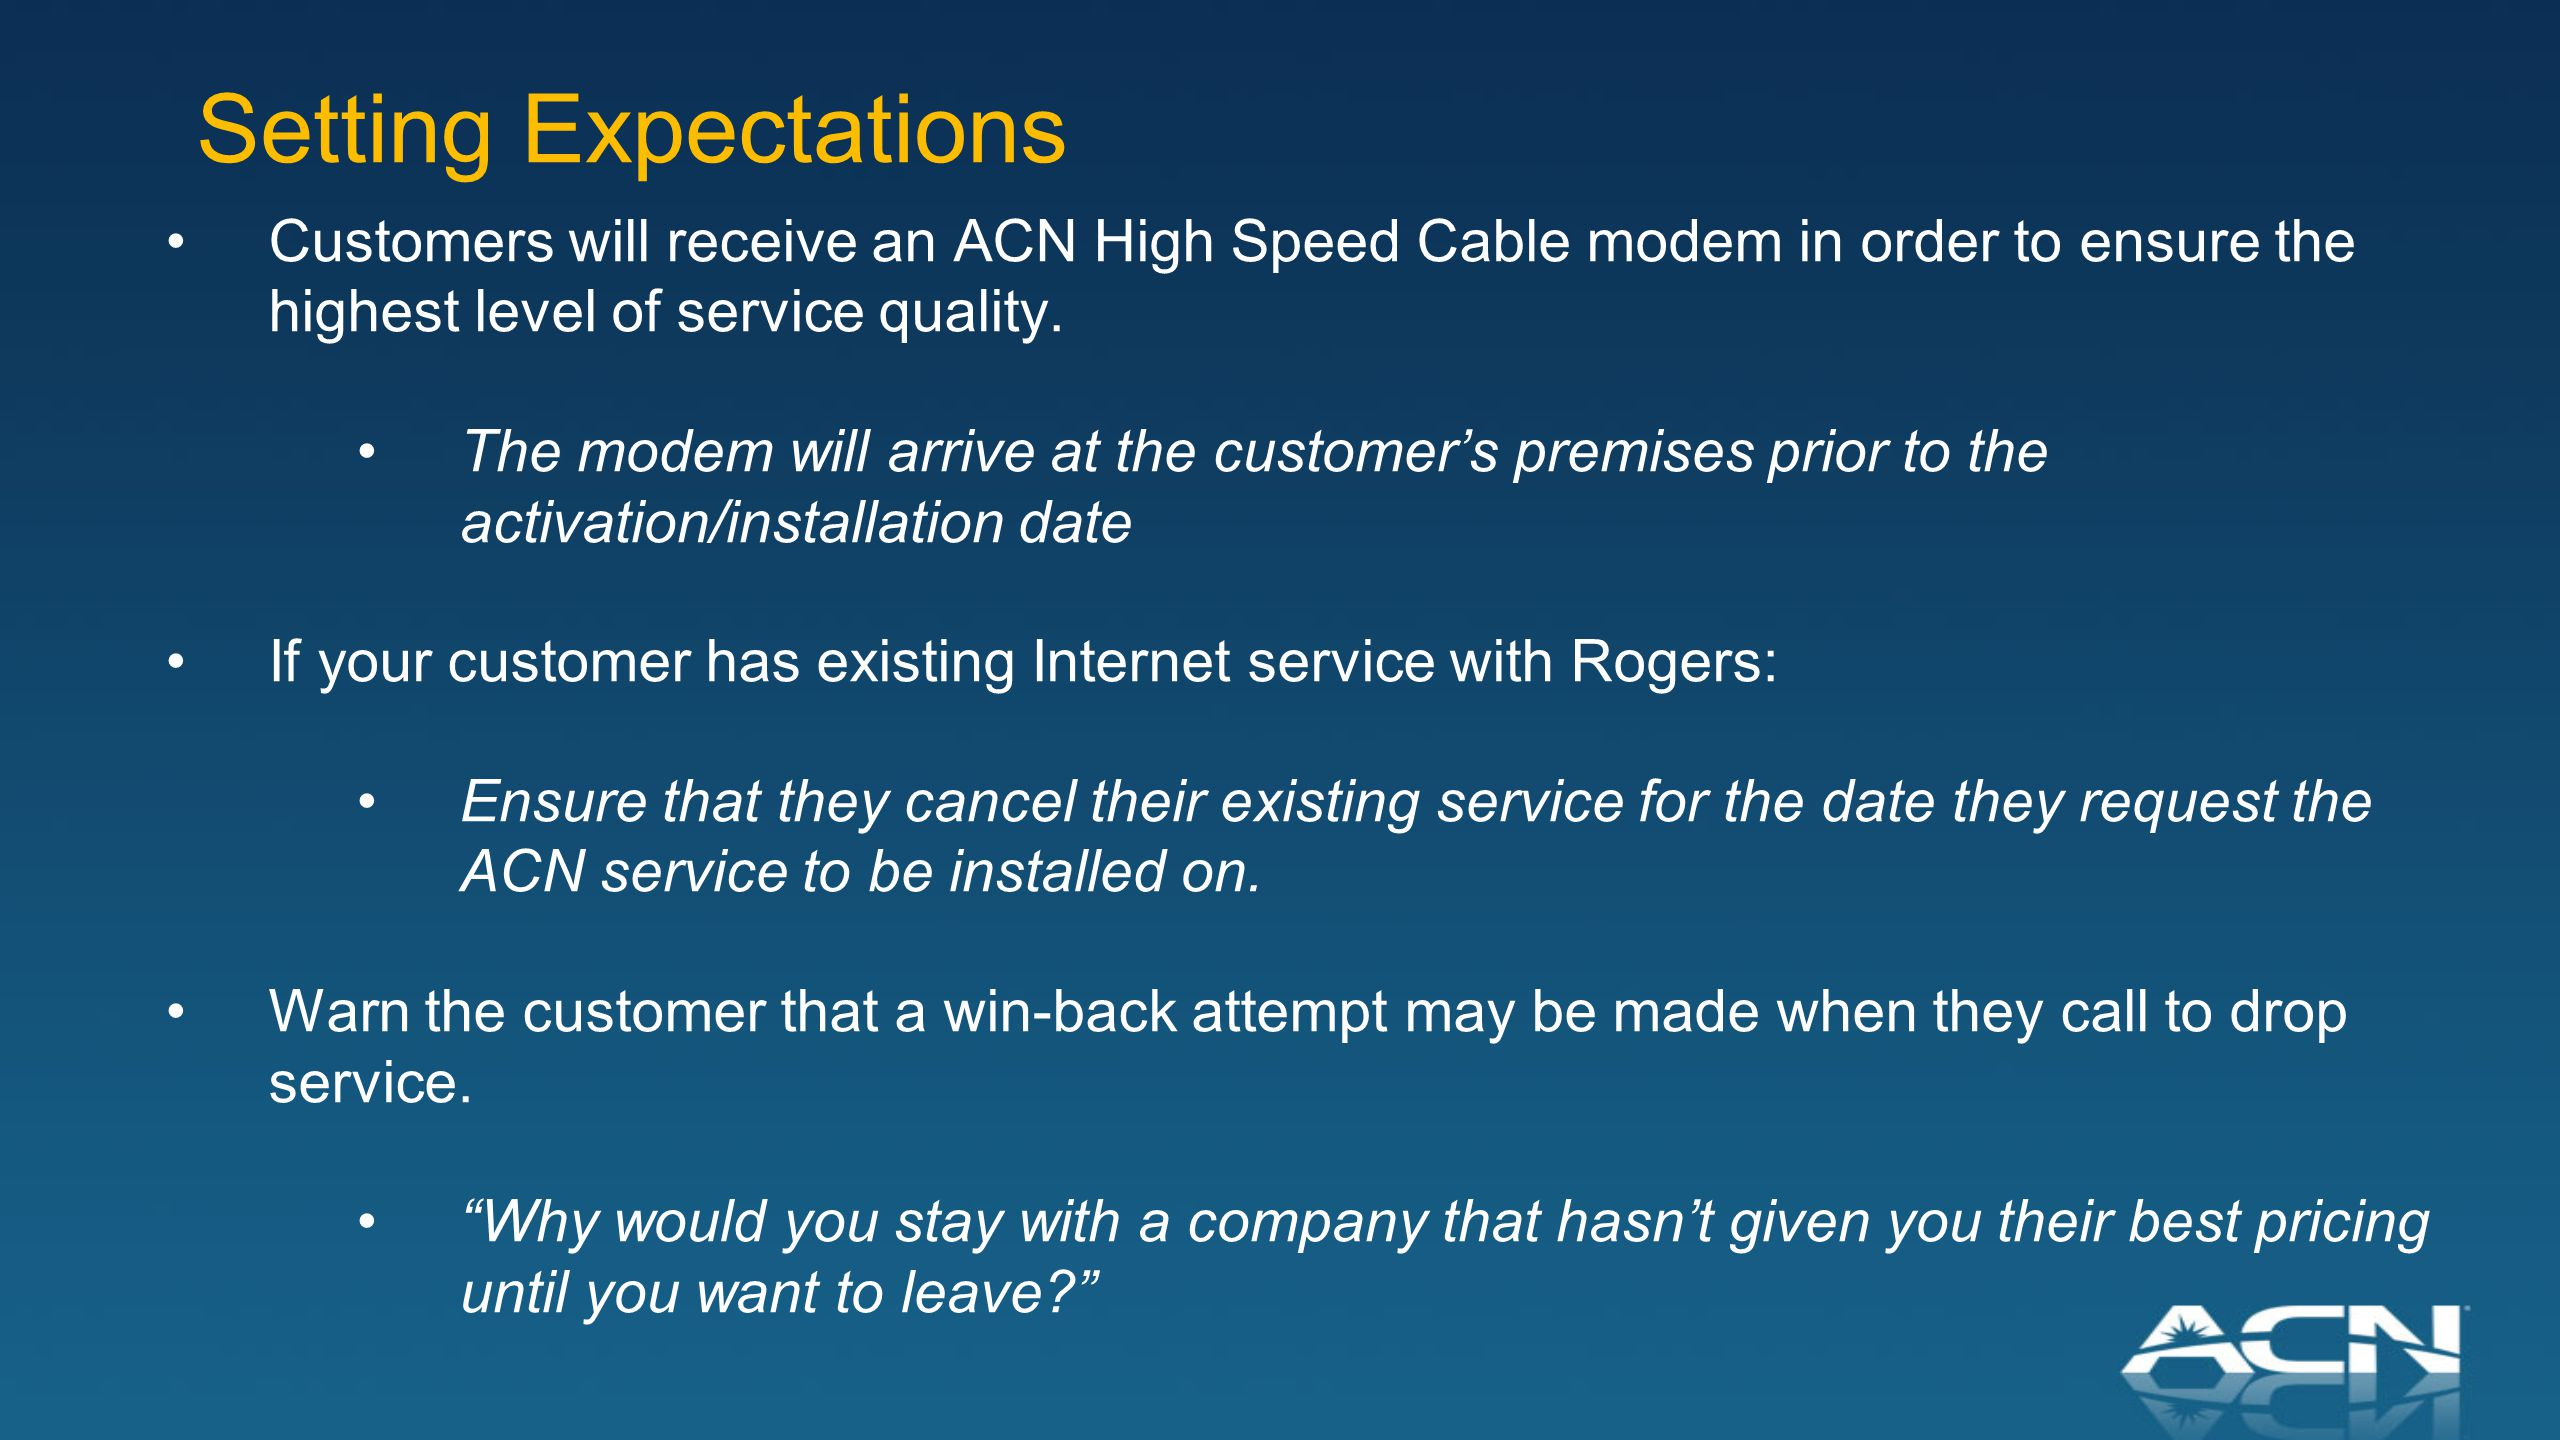 Customers will receive an ACN High Speed Cable modem in order to ensure the highest level of service quality.